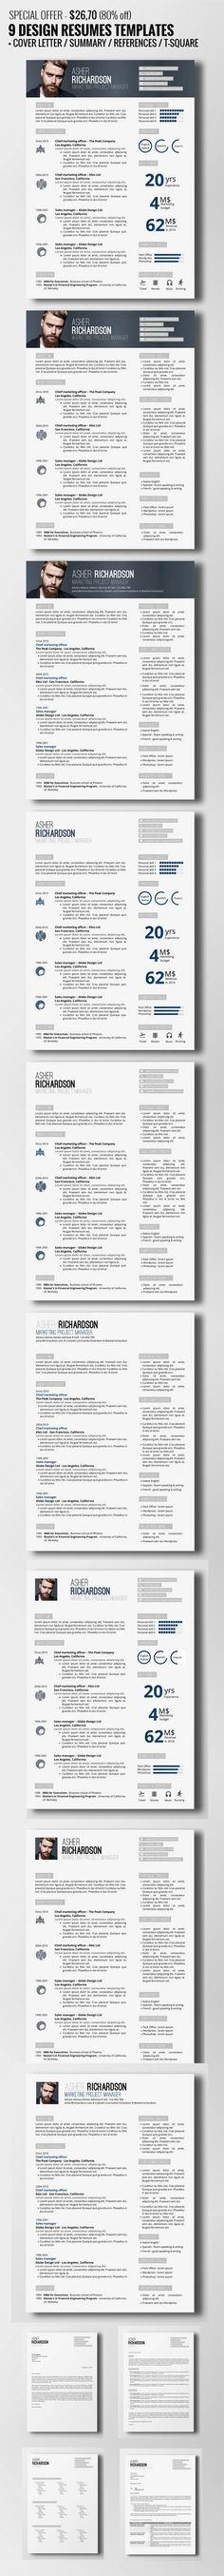 435 best Resume images on Pinterest Resume design, Design resume - classic resume design